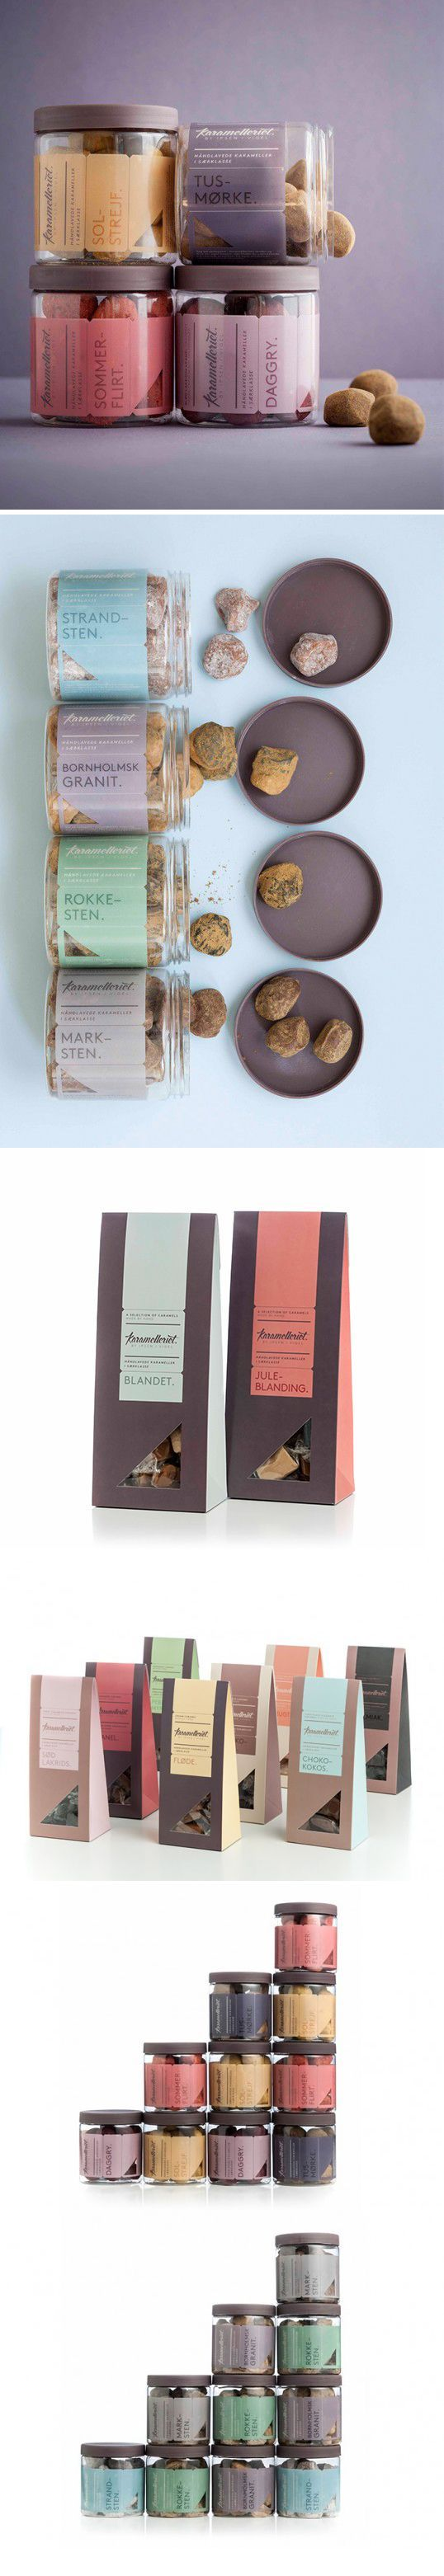 Chocolate #packaging design. Great colors palette…